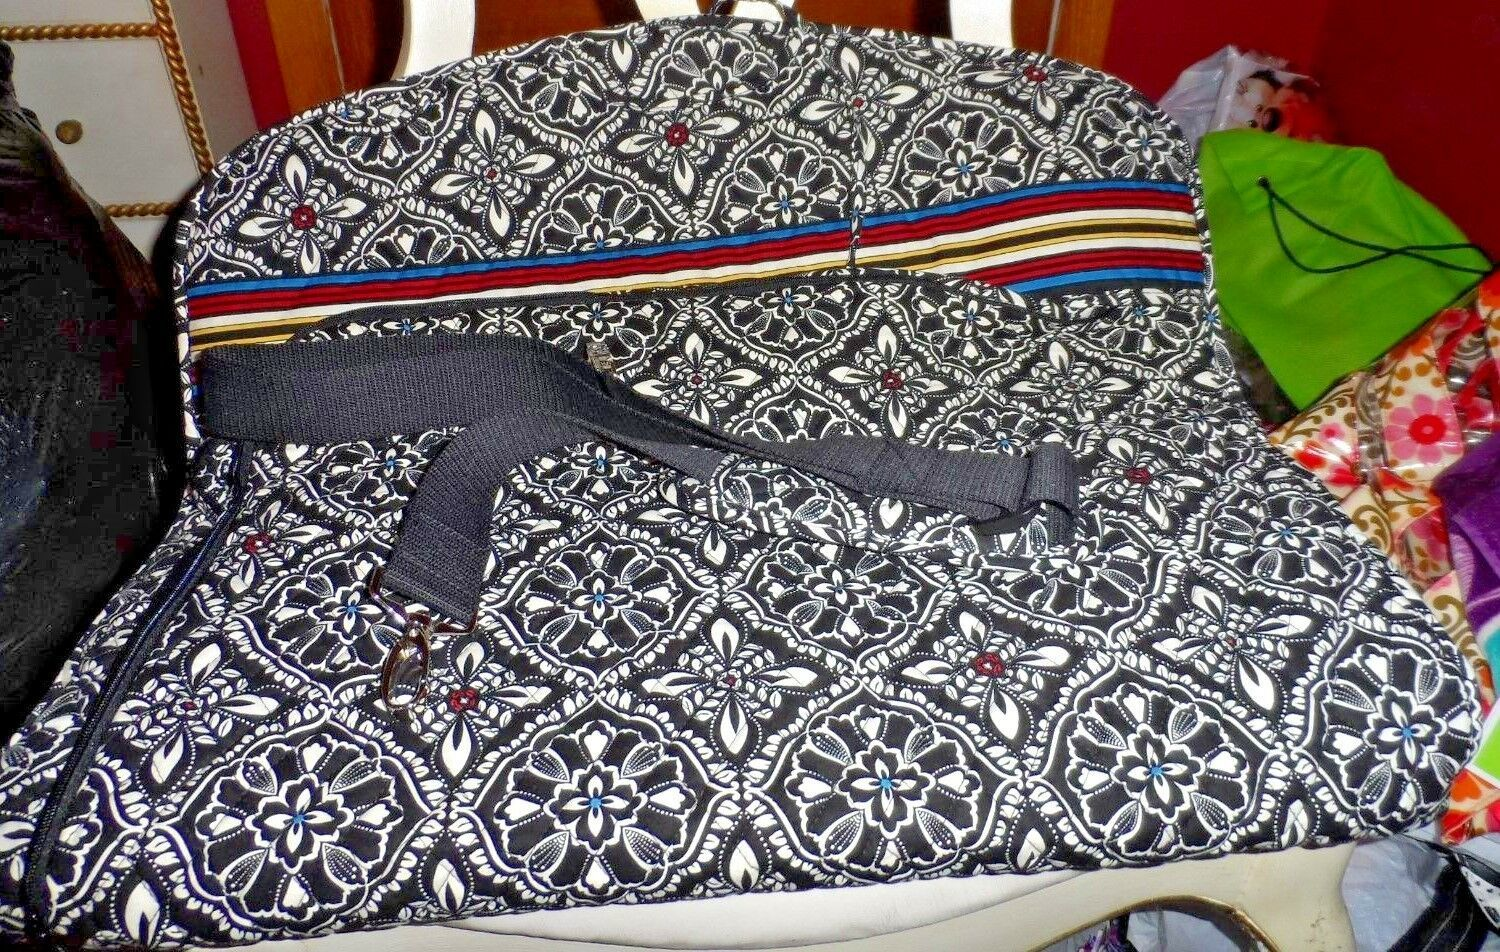 Vera Bradley Garment bag in Barcelona